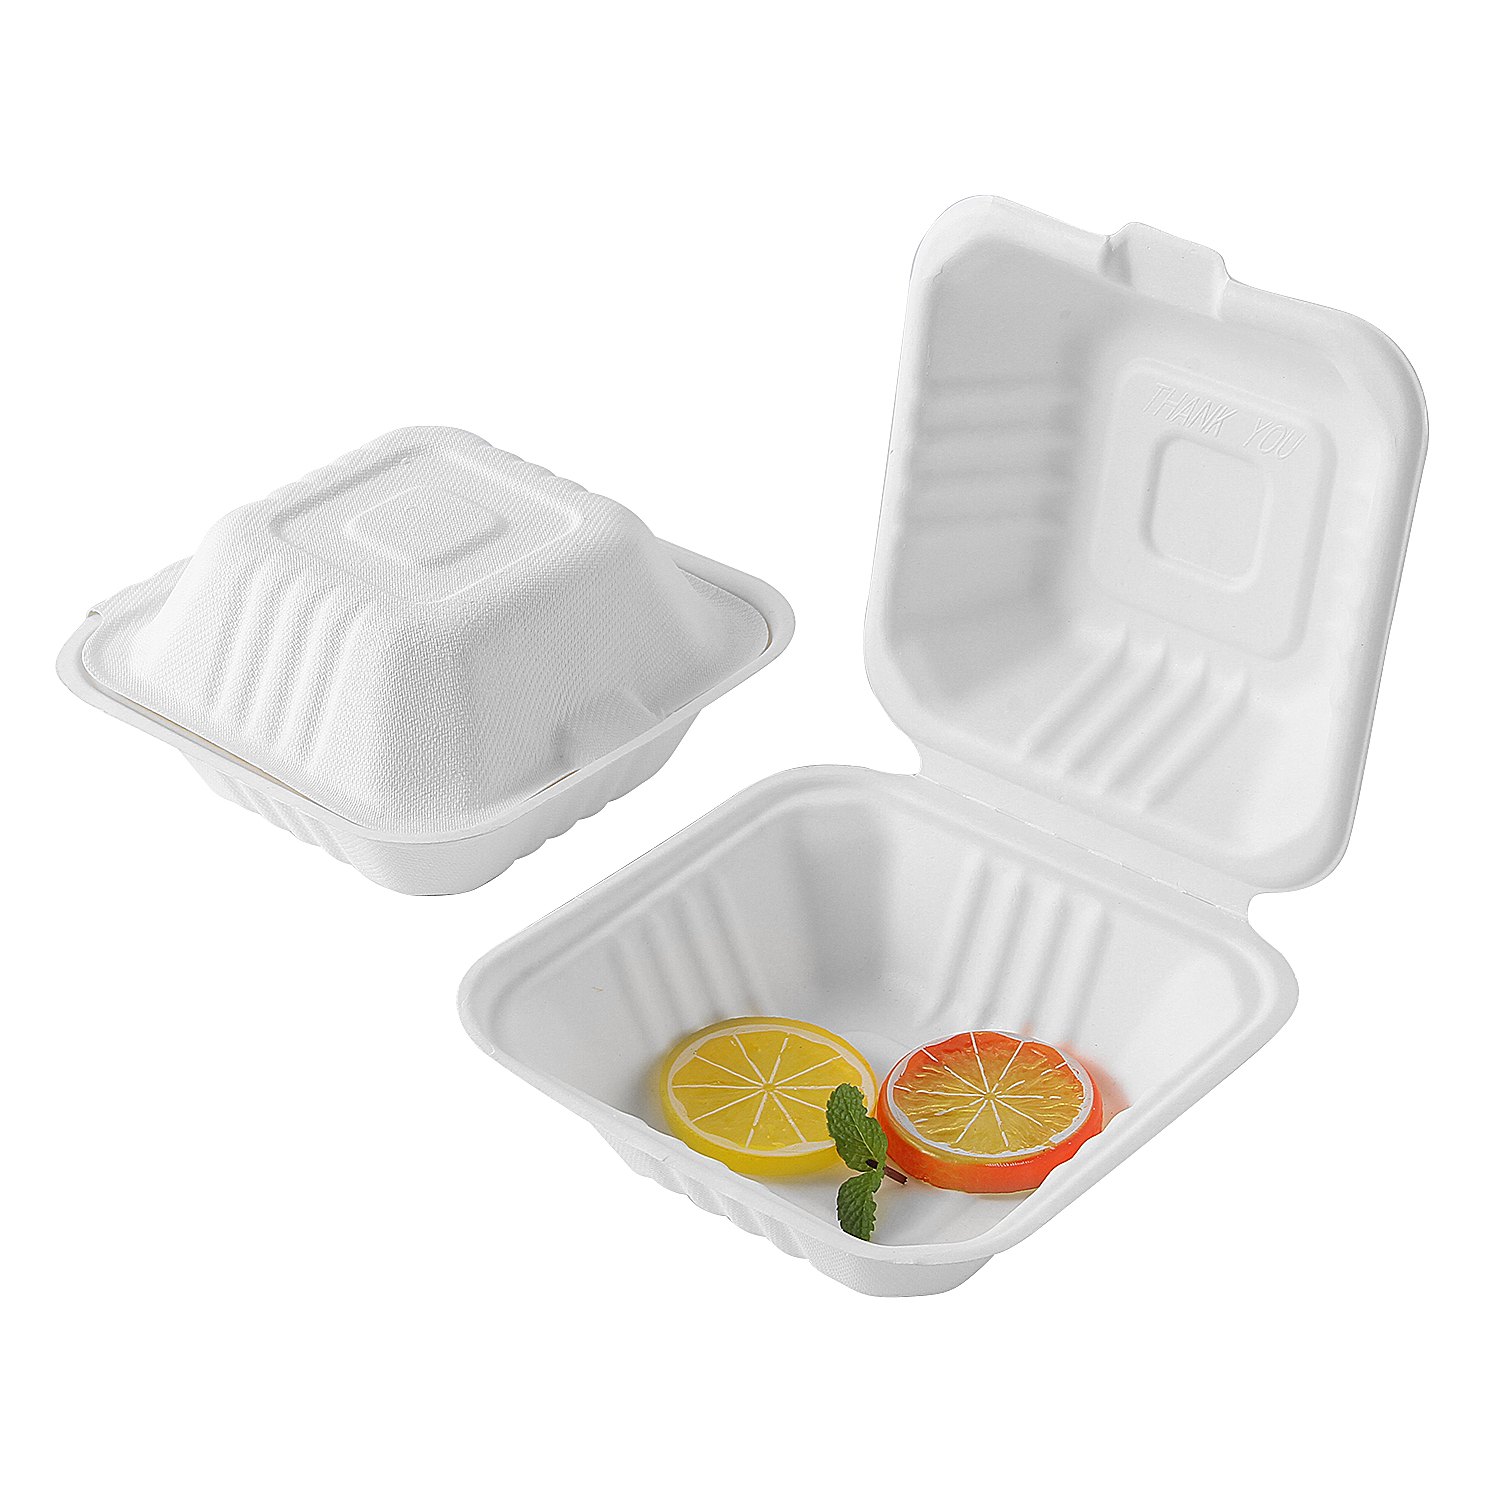 "6""x6"" x3"" Take Away Sugarcane Pulp Hamburger Box"